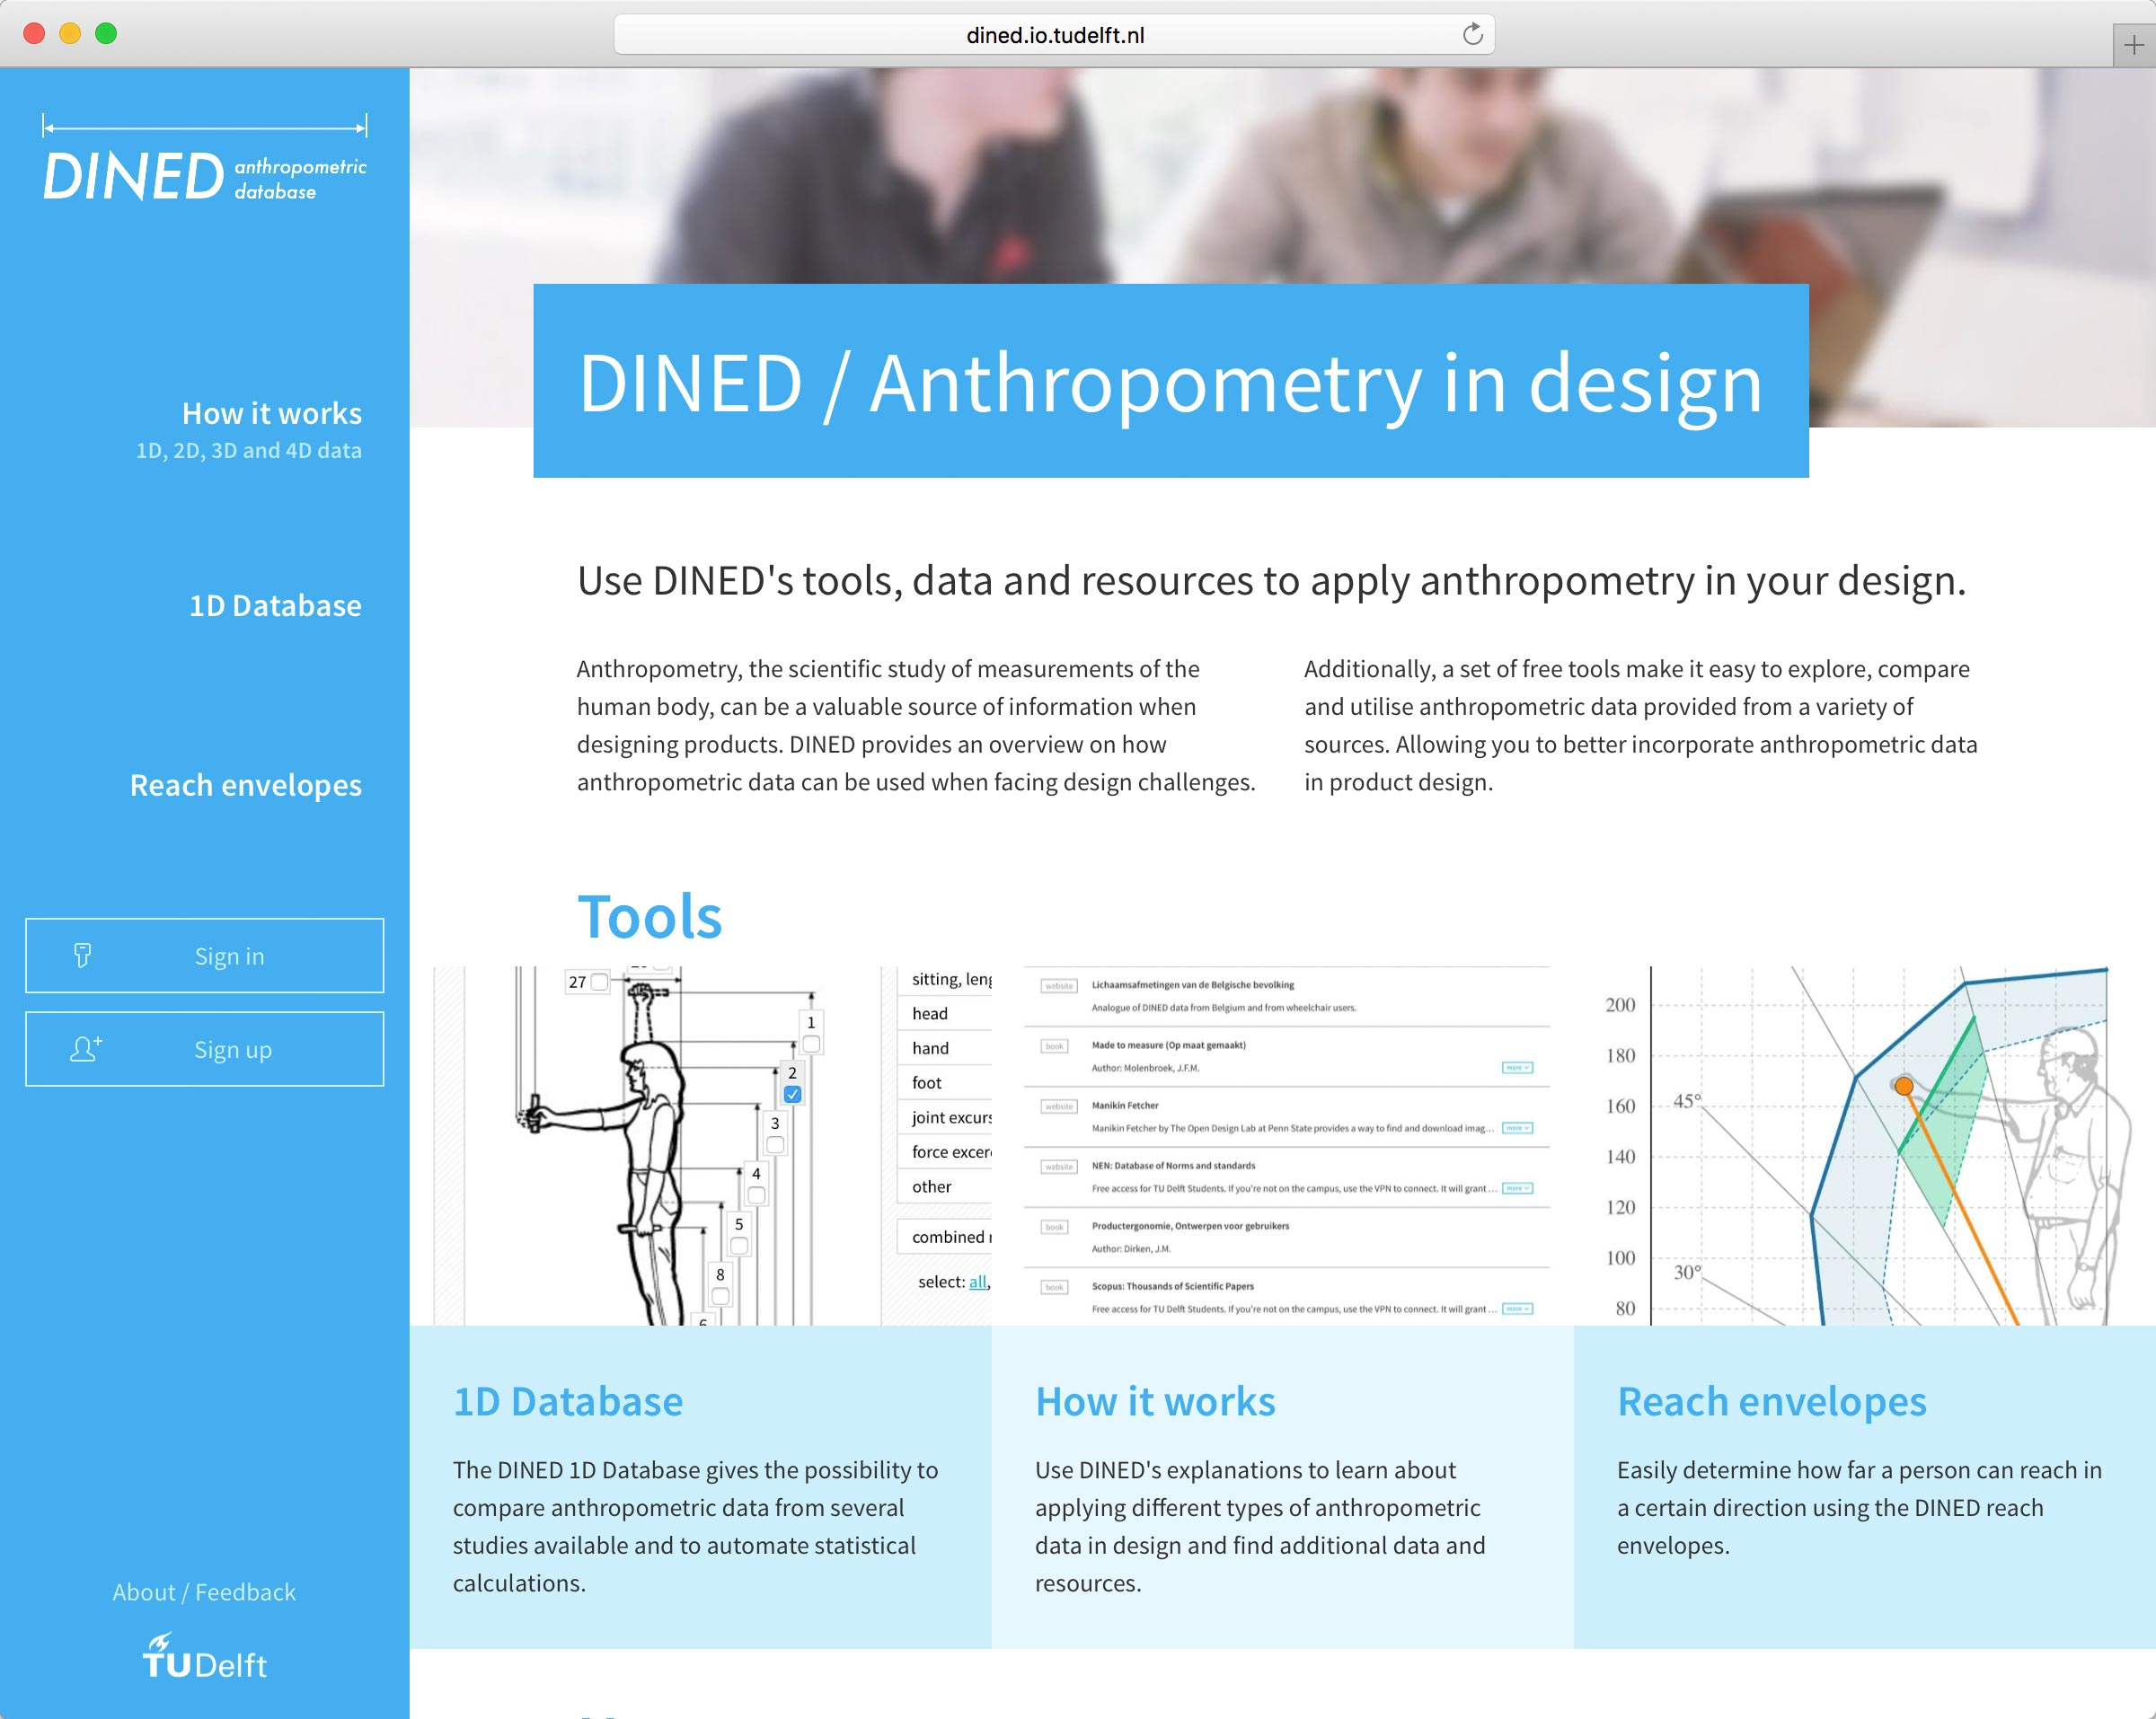 dined.io.tudelft.nl home page